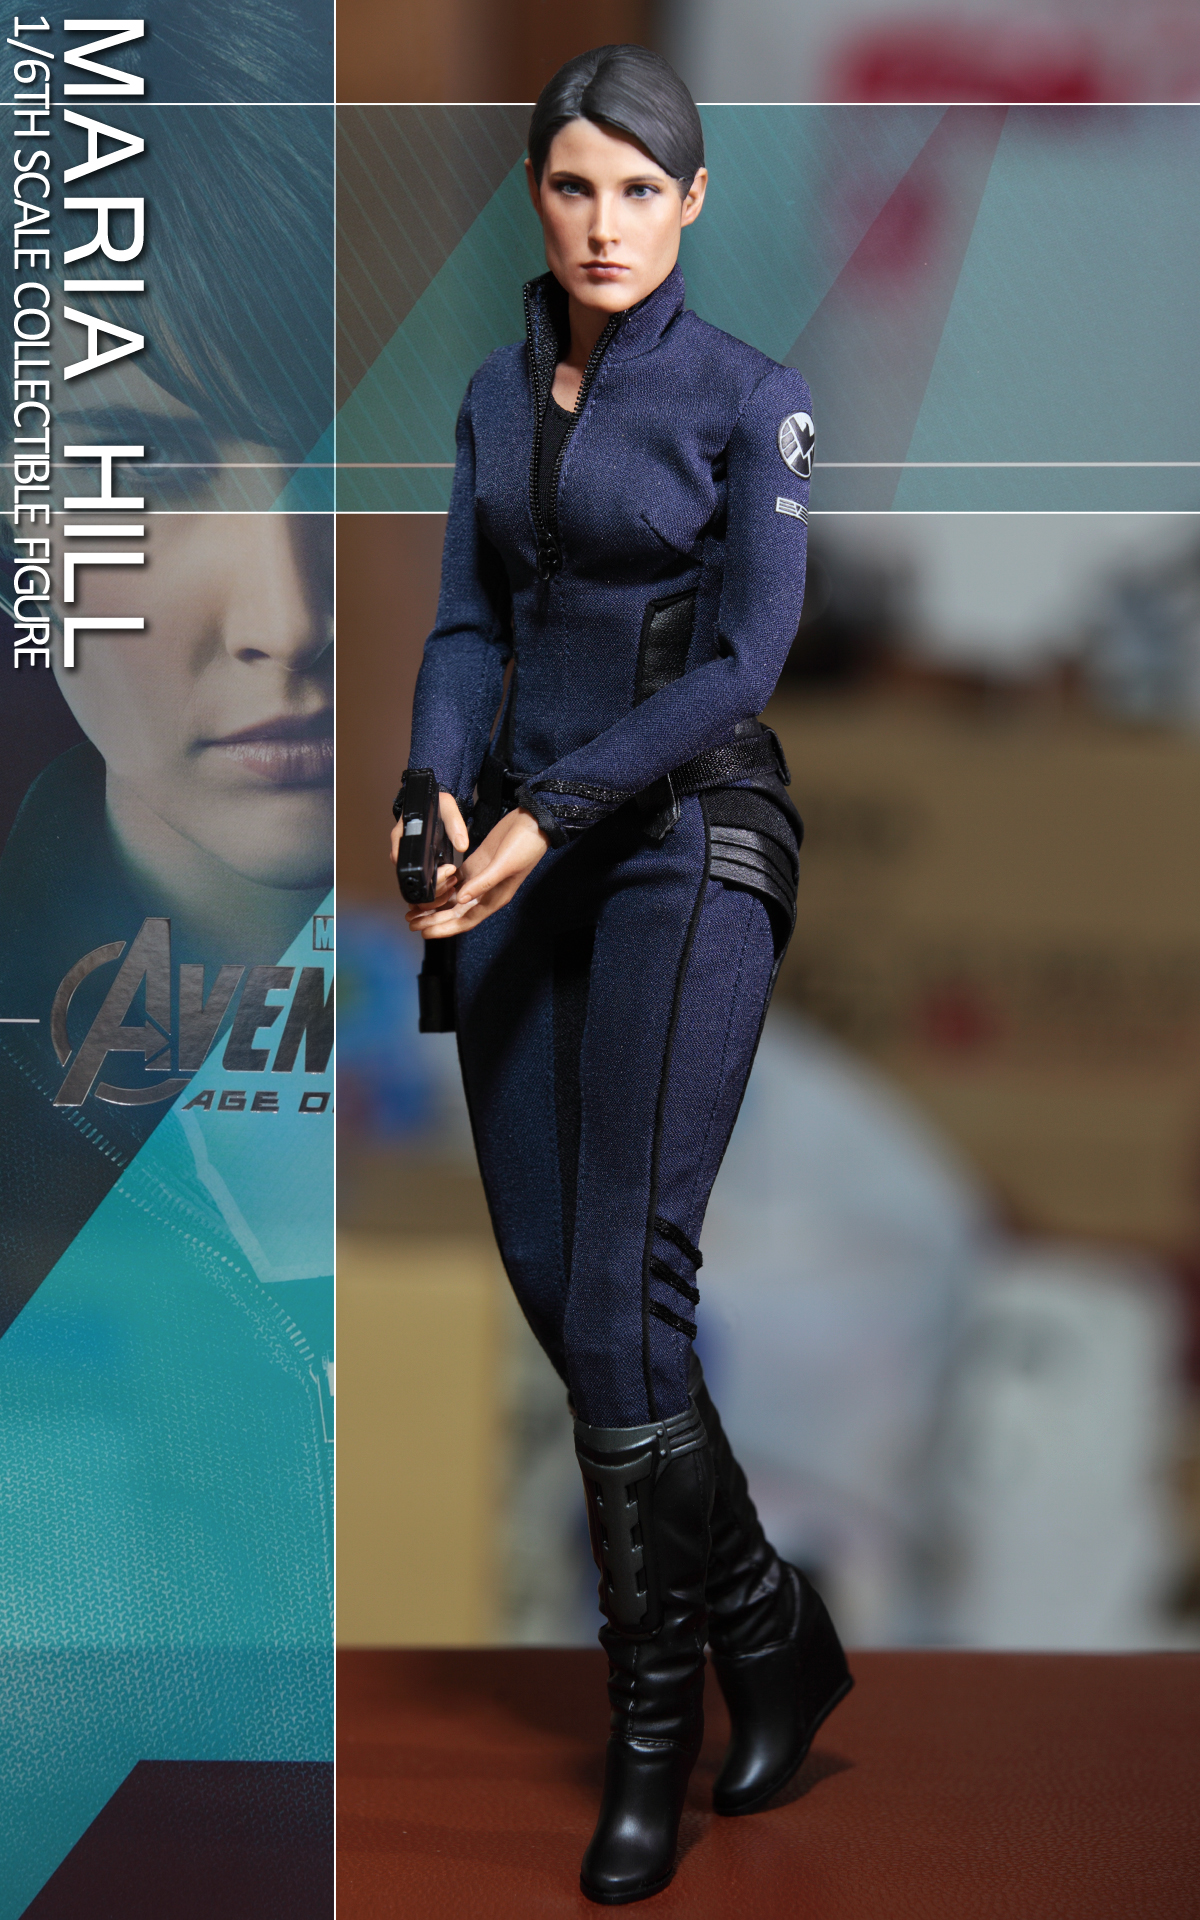 hottoys-avengers-age-of-ultron-maria-hill-picture01